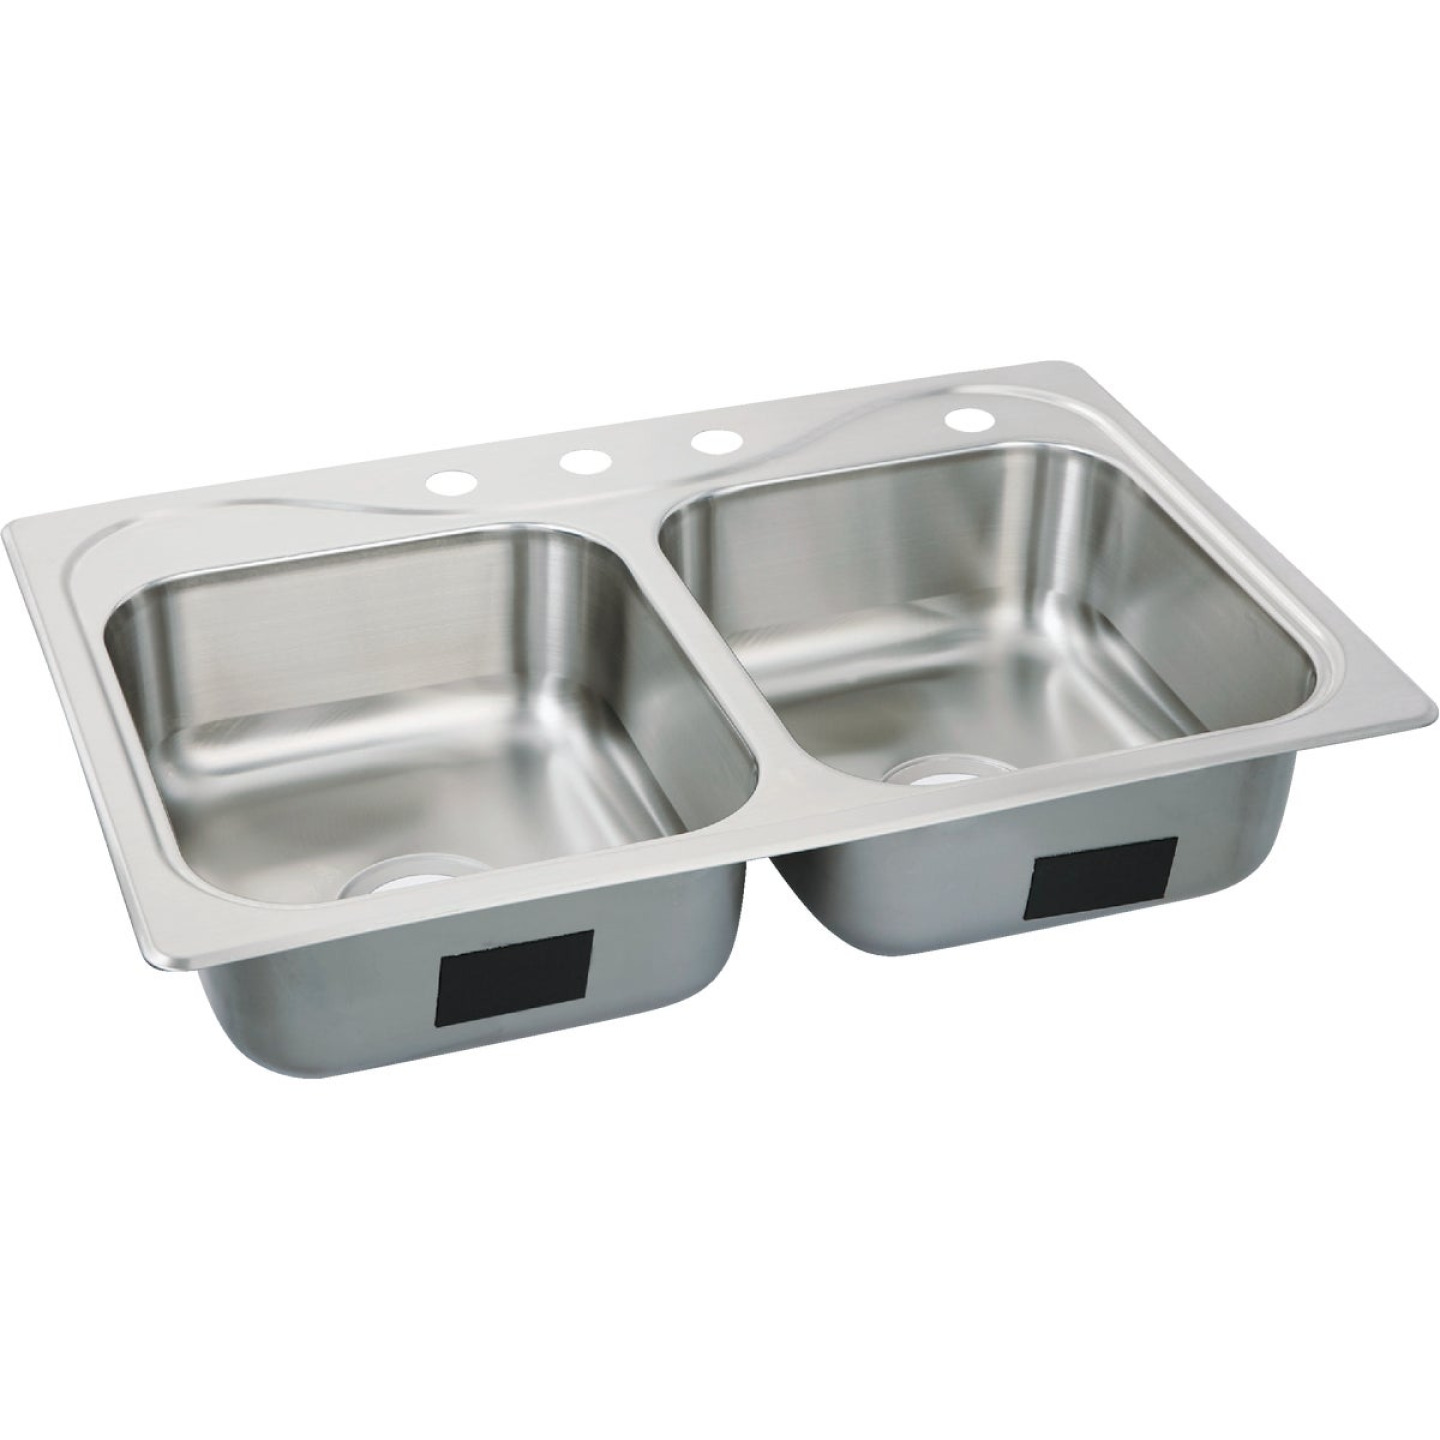 Sterling Southhaven Double Bowl 33 In. x 22 In. x 7 In. Deep Stainless Steel Kitchen Sink Image 1